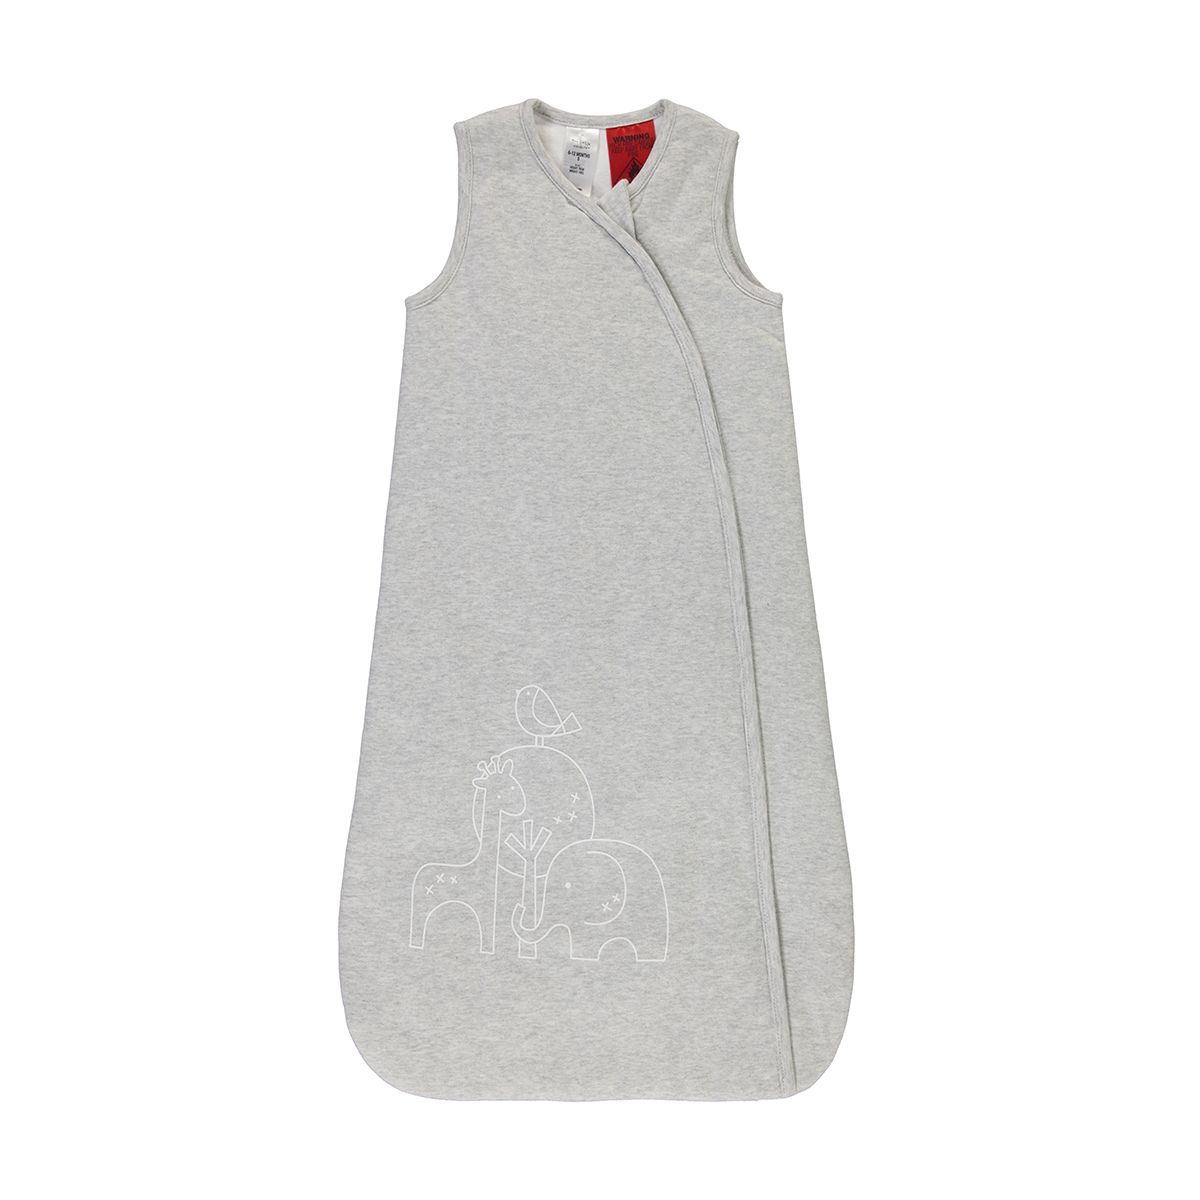 Sleeveless Sleeping Bag Kmart